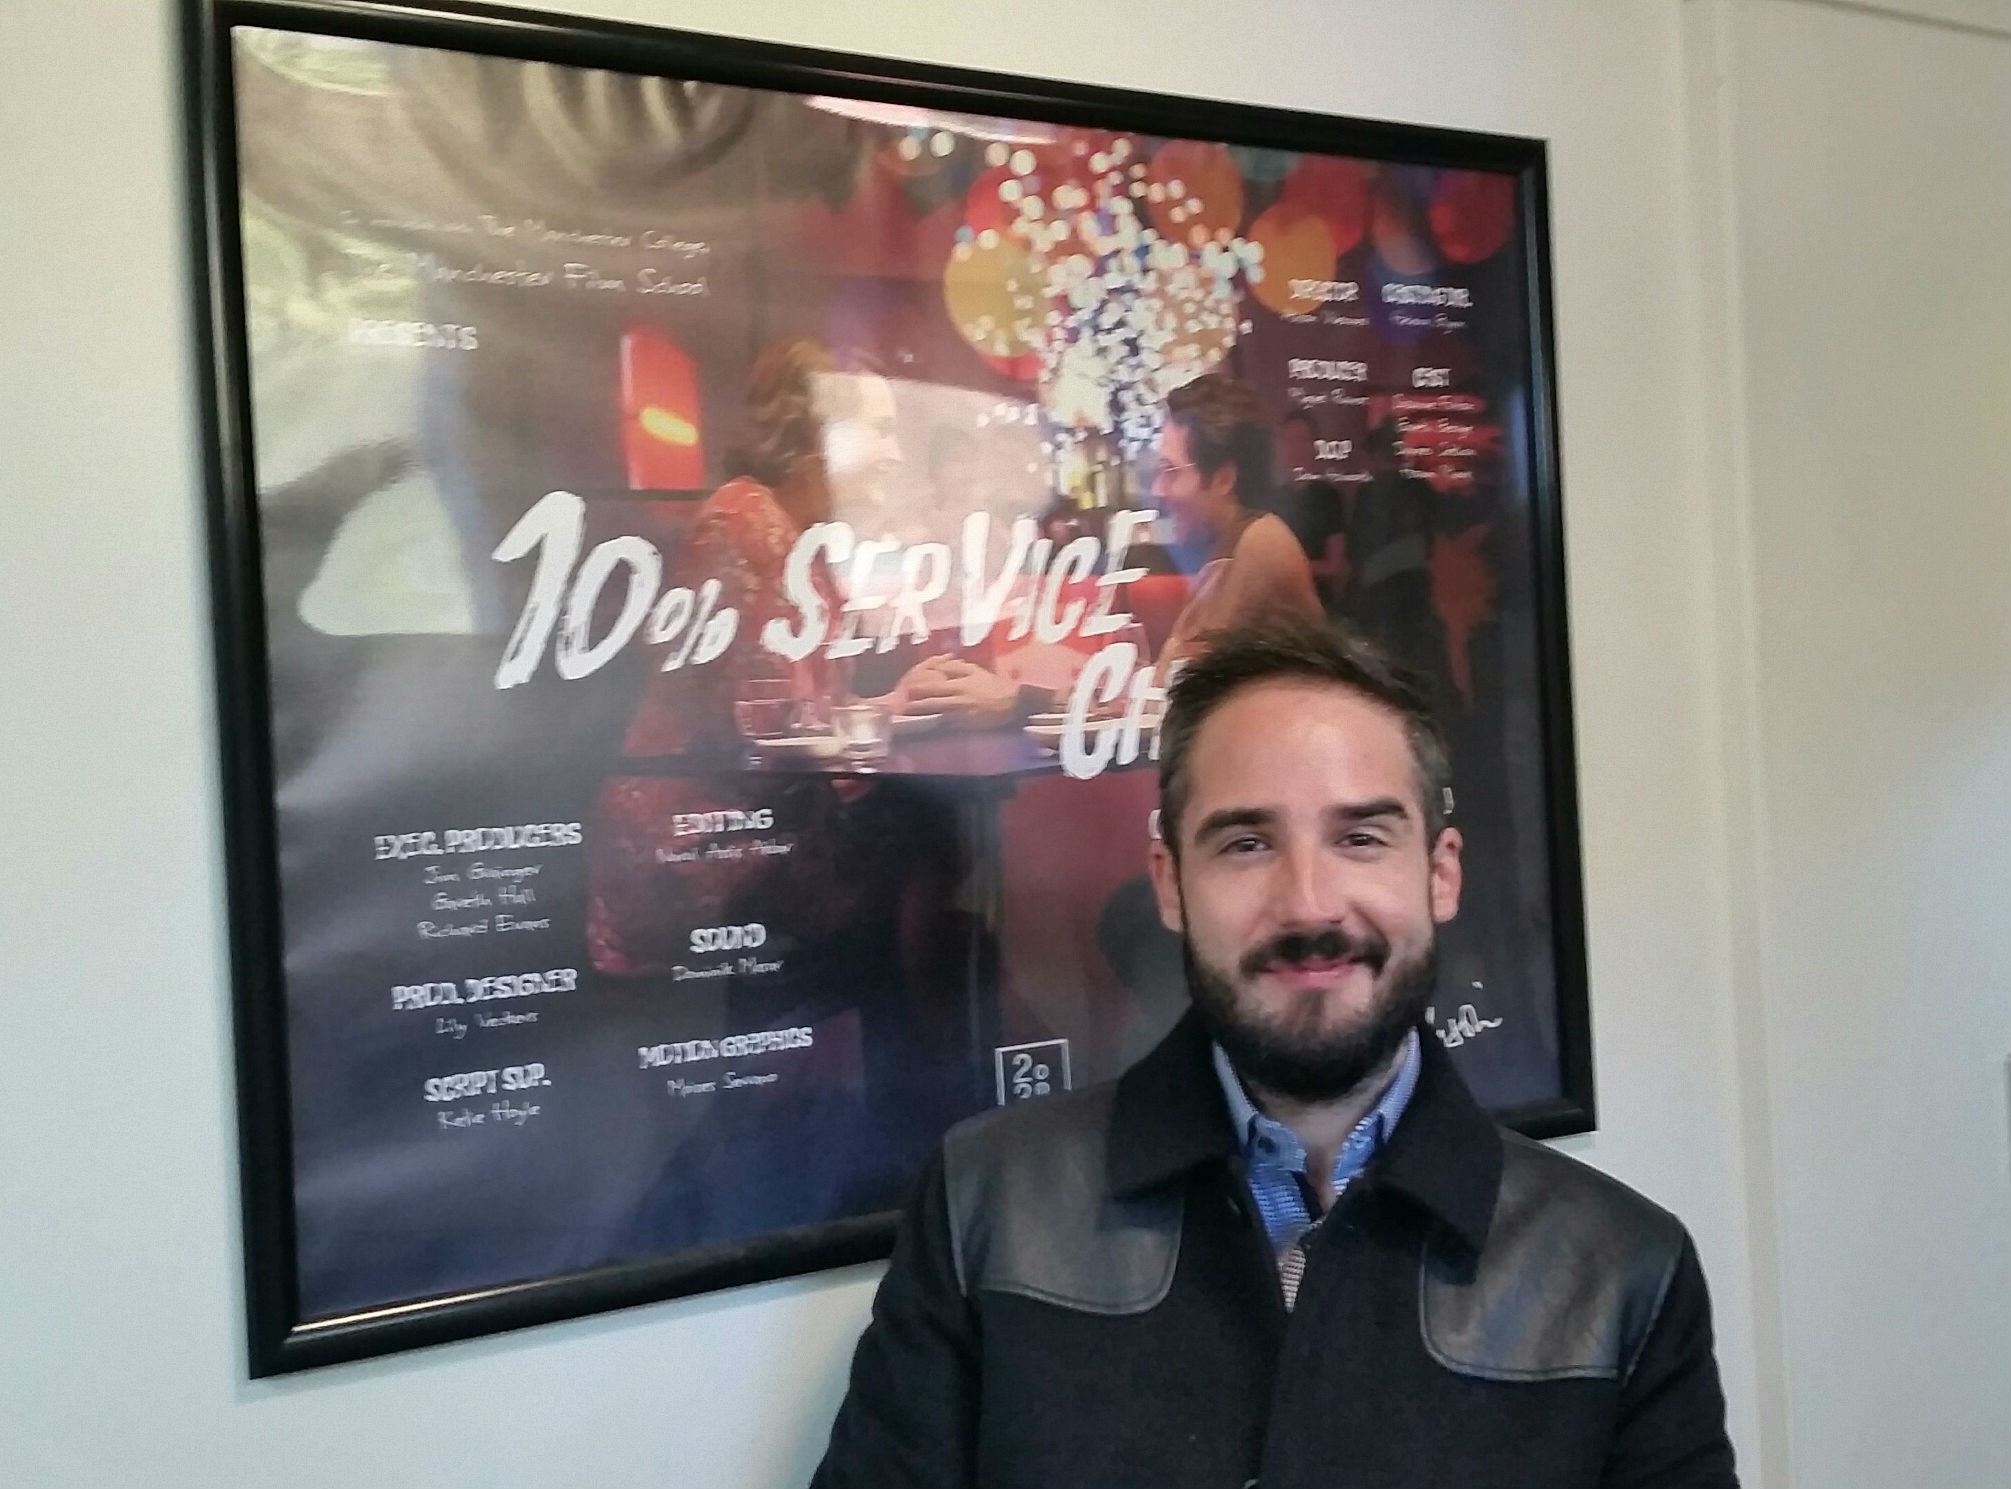 Man smiles infront of movie poster